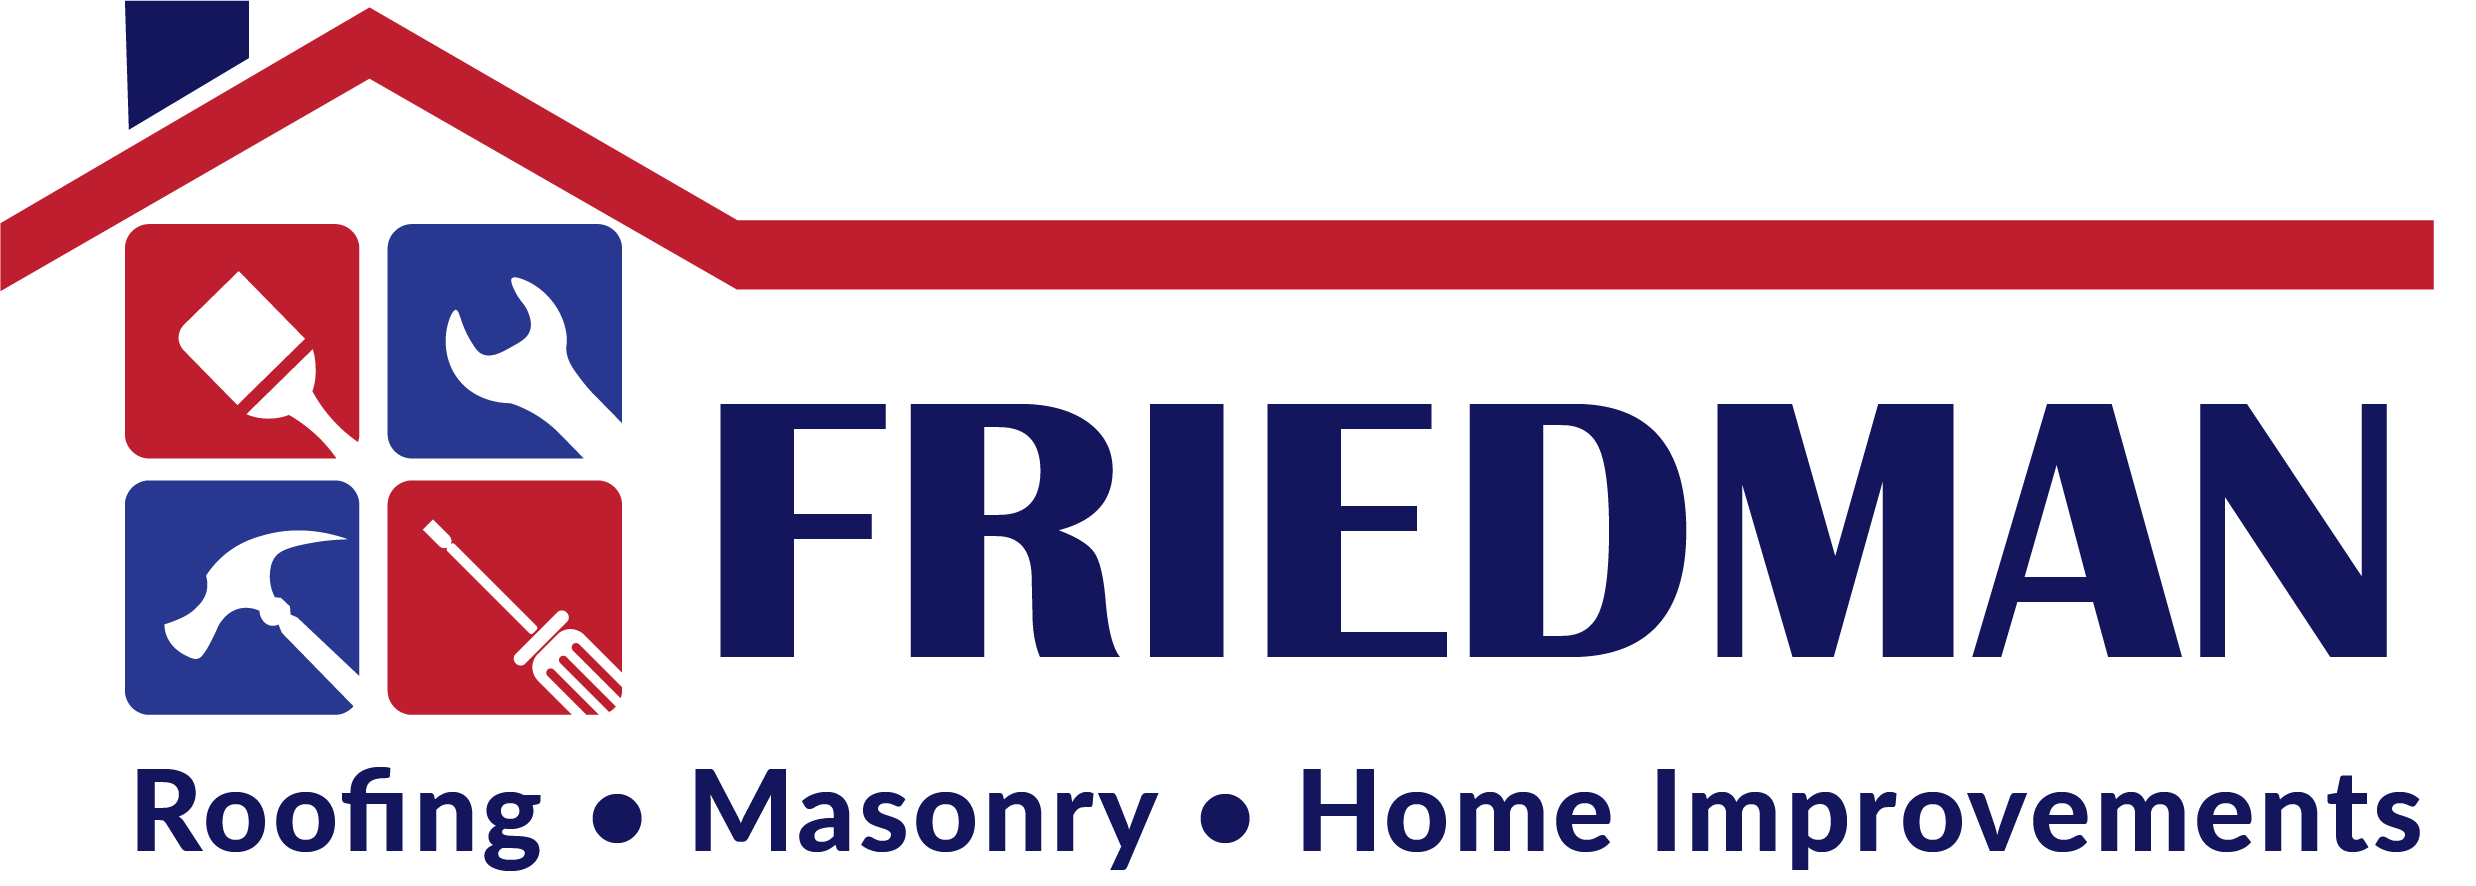 Friedman Home Improvements is Offering Outstanding Roof Repairs in Fairborn